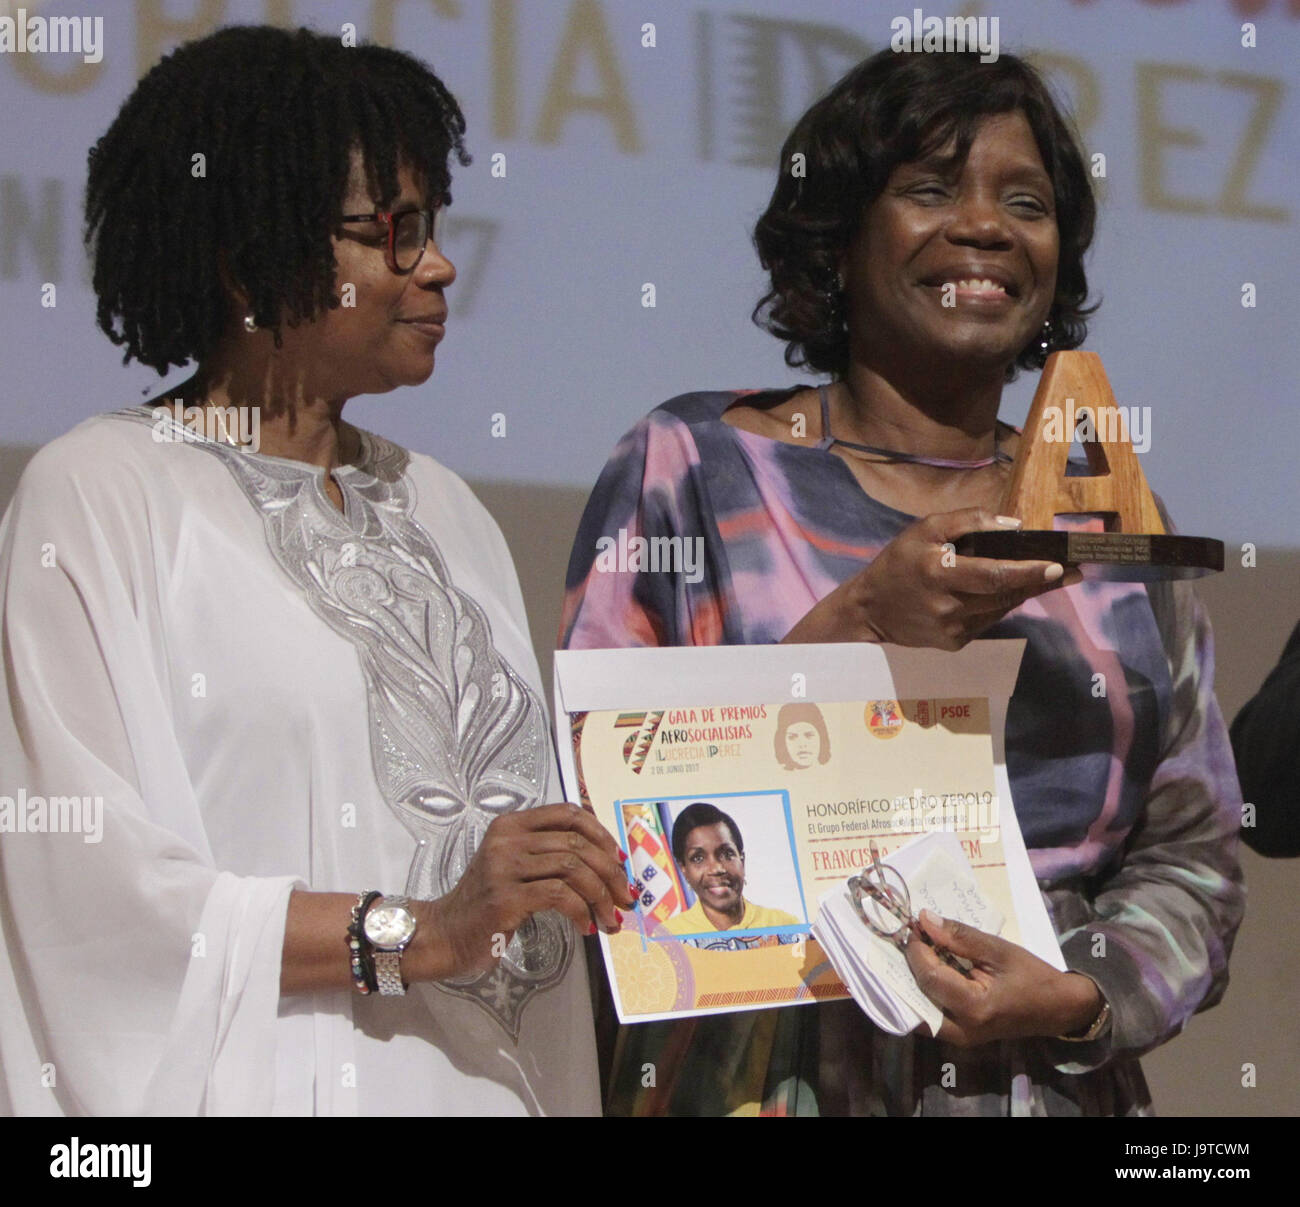 Portuguese Justice Minister Francisca Van Dunem (R), first black member of Portugal's Government, is awarded - Stock Image